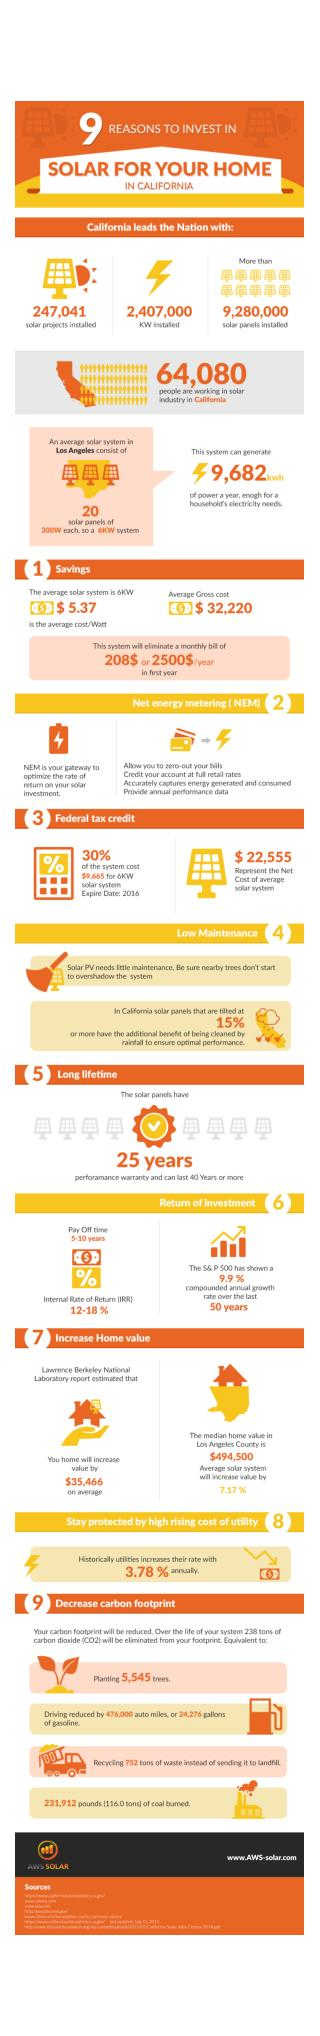 Infographic 9 Reasons to Invest in Solar Panels